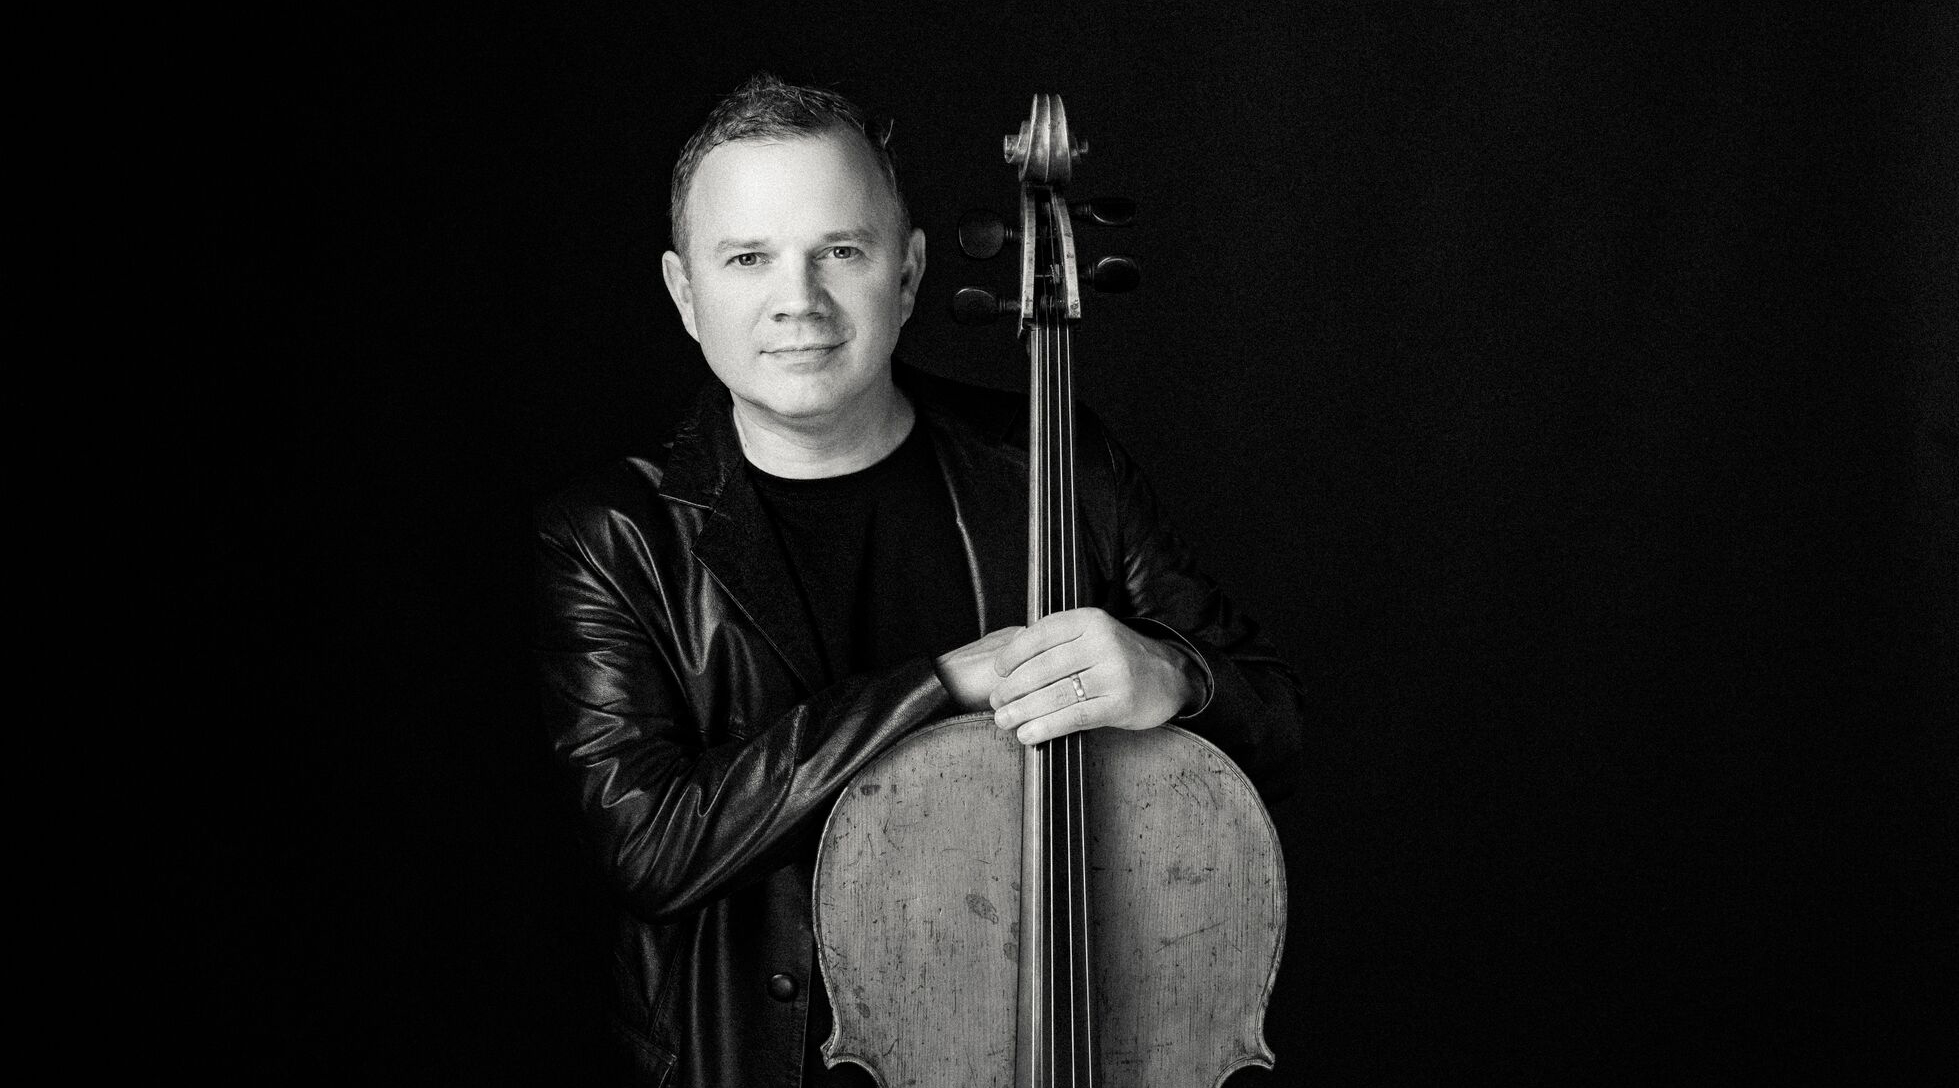 Professor Nick Curry holding his cello